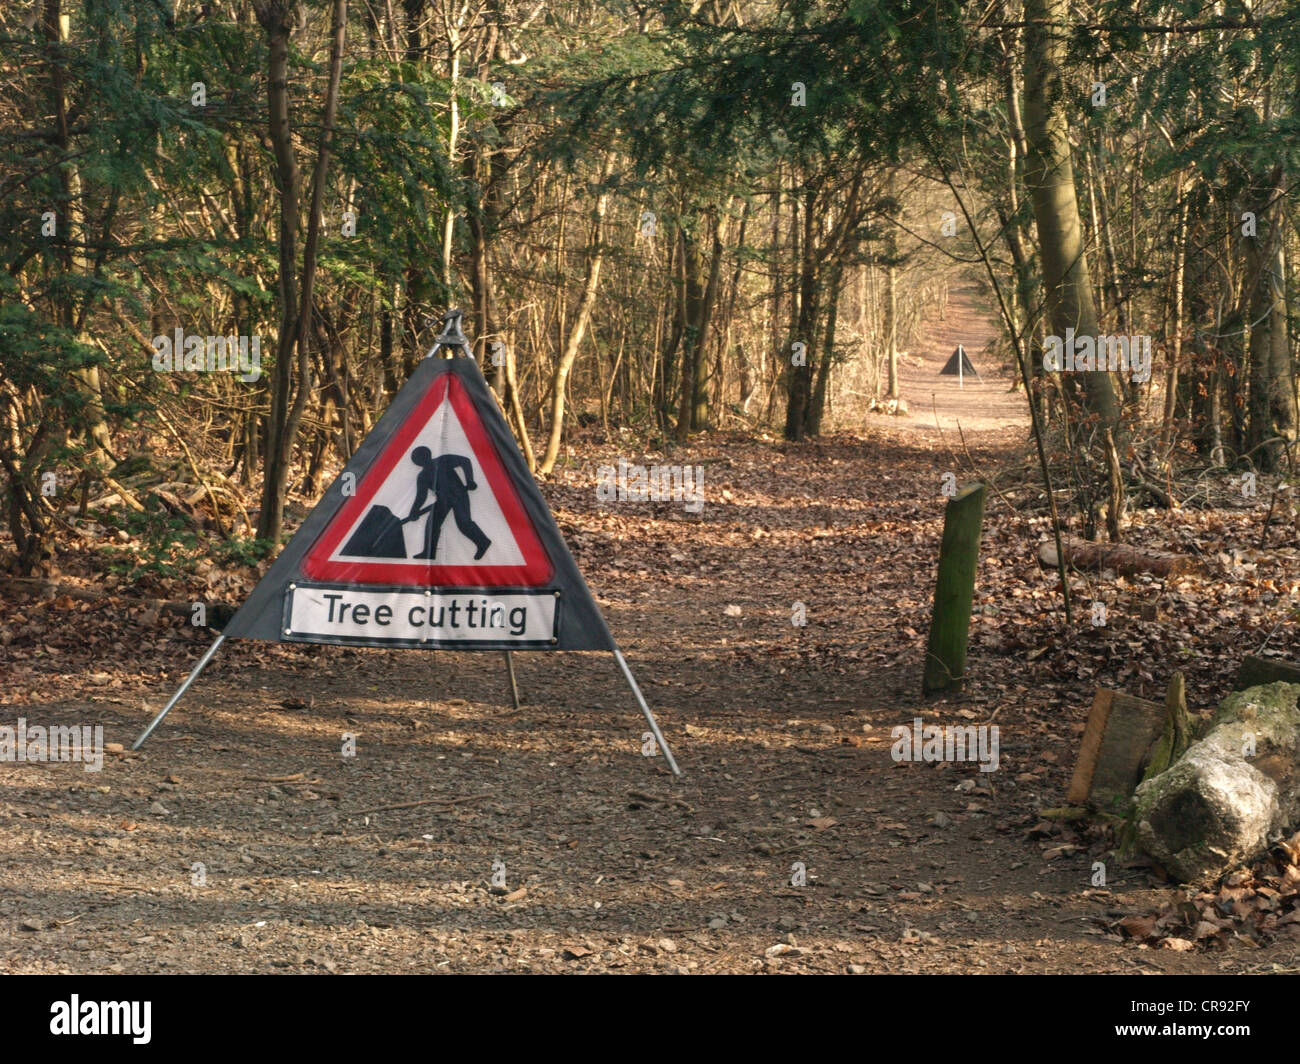 Tree cutting men at work warning signs, in the woods for walkers - Stock Image